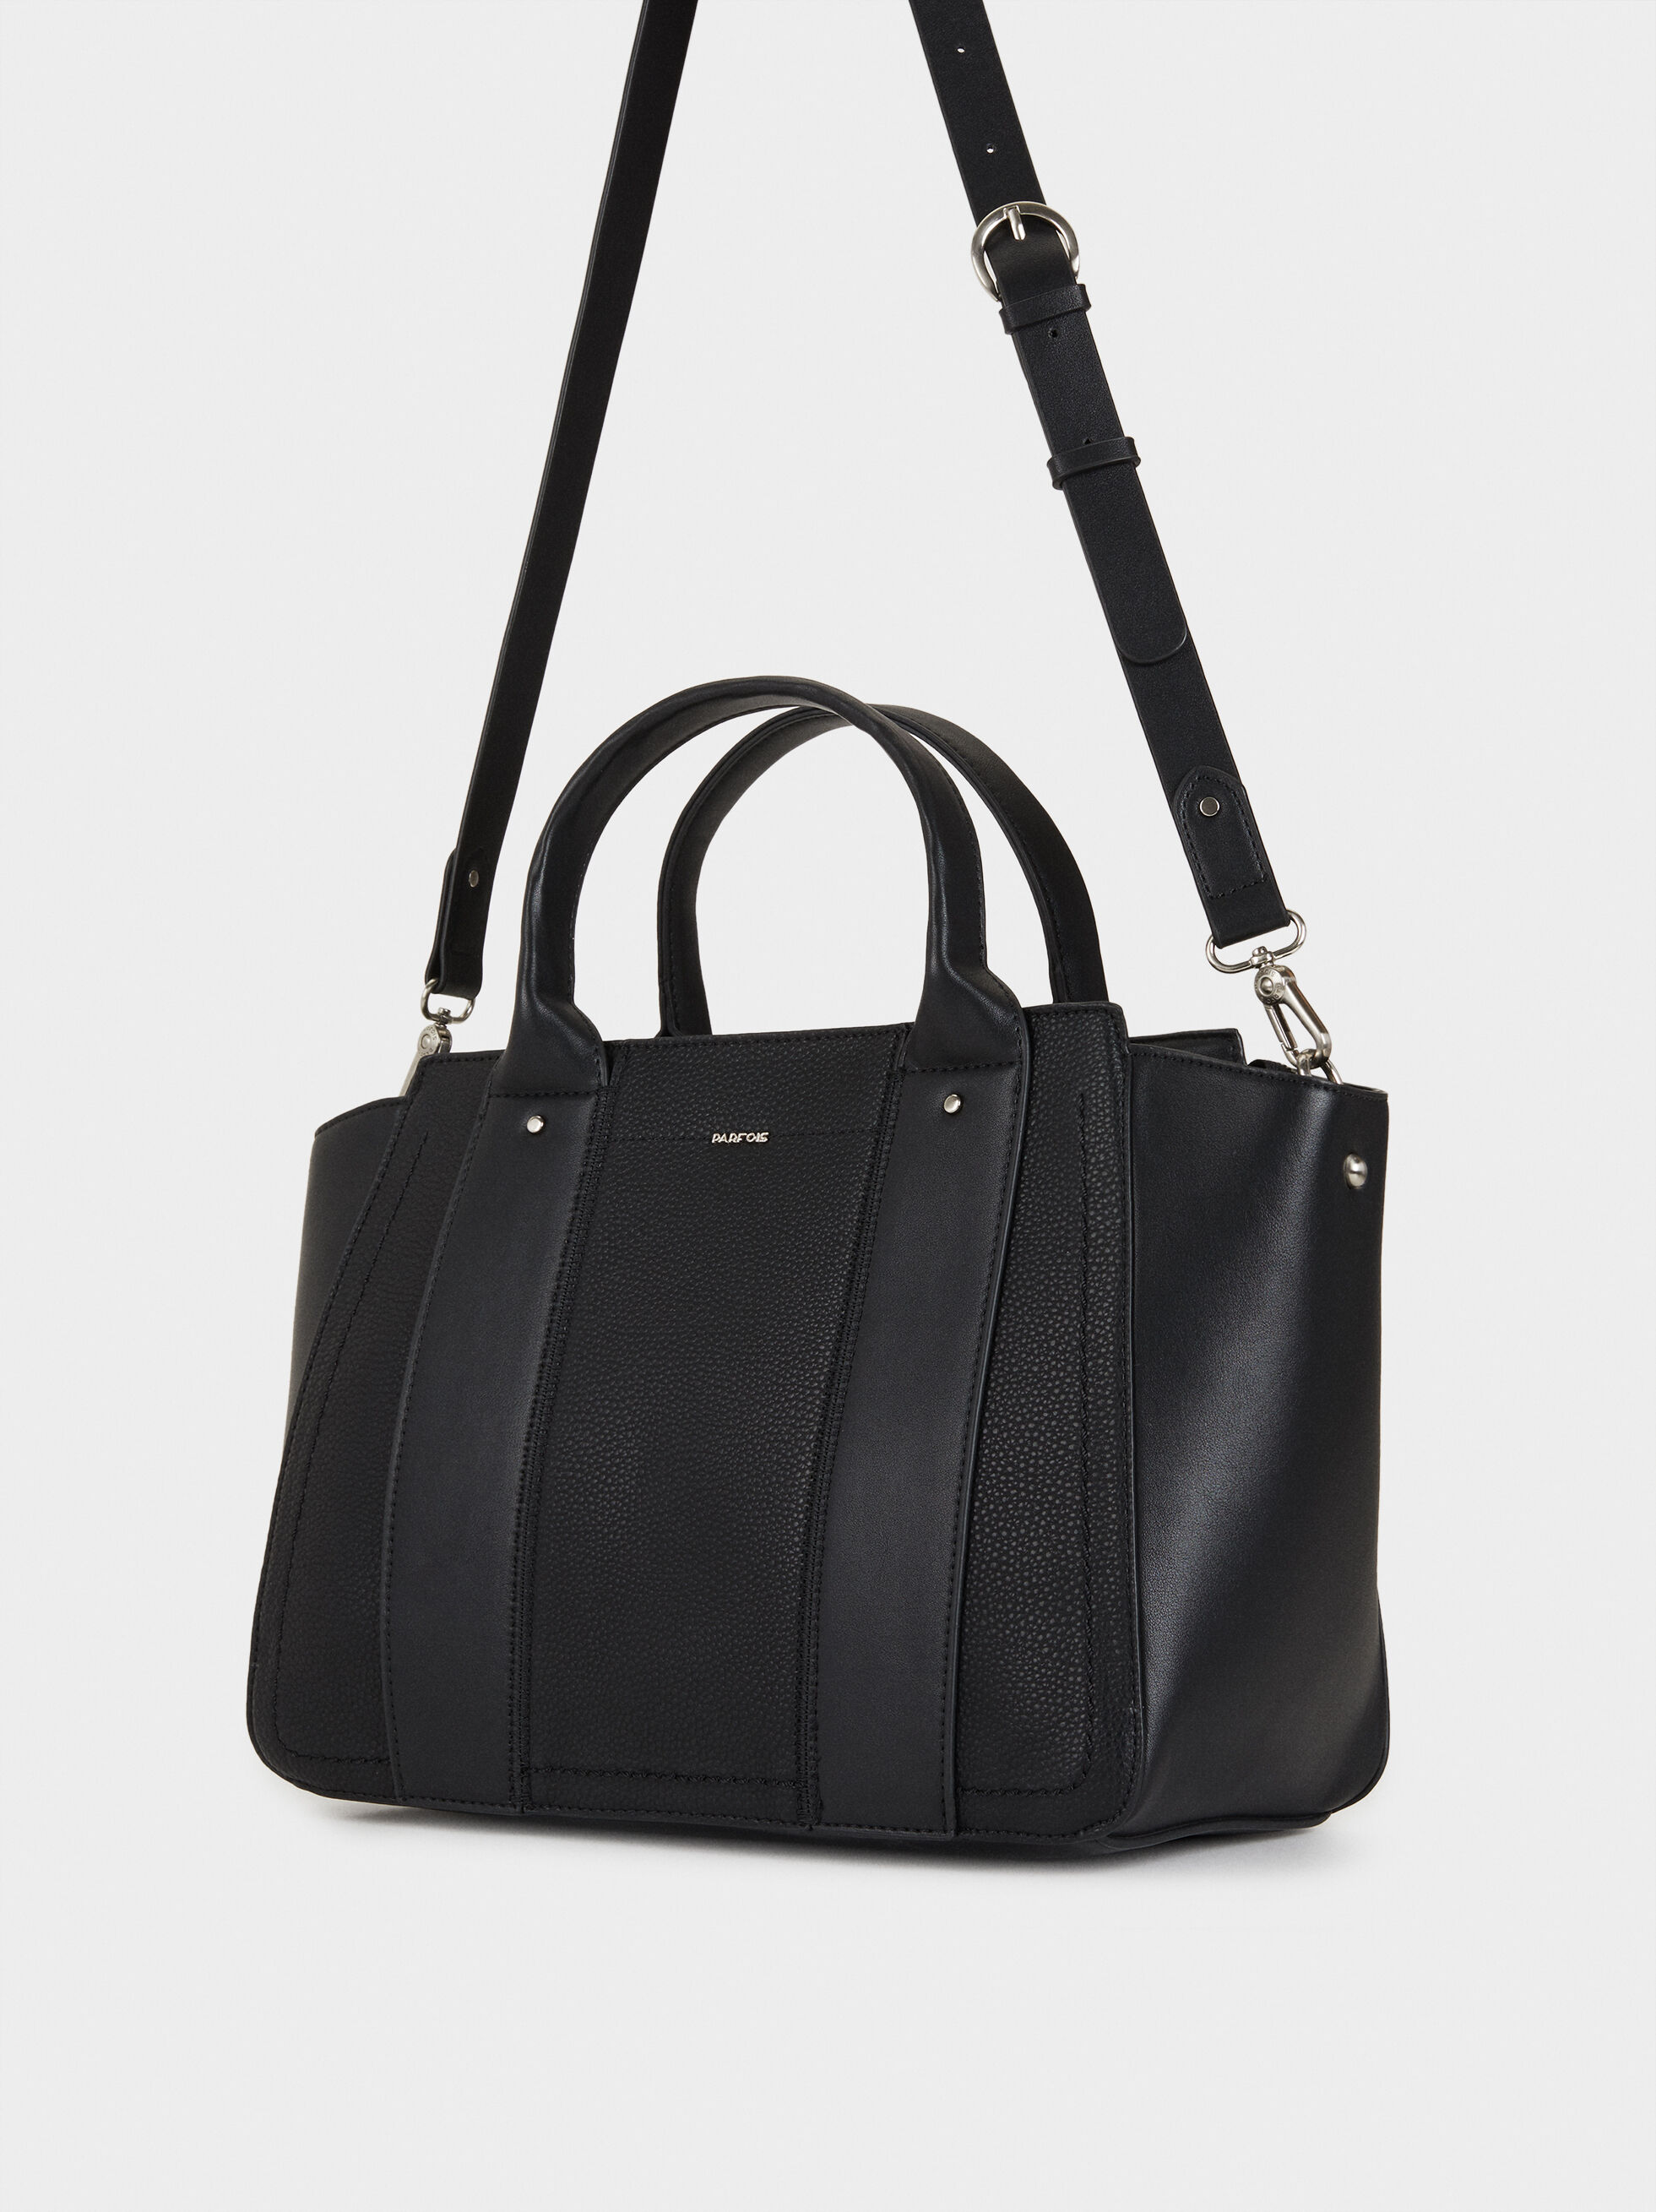 Idra Tote Bag, Black, hi-res